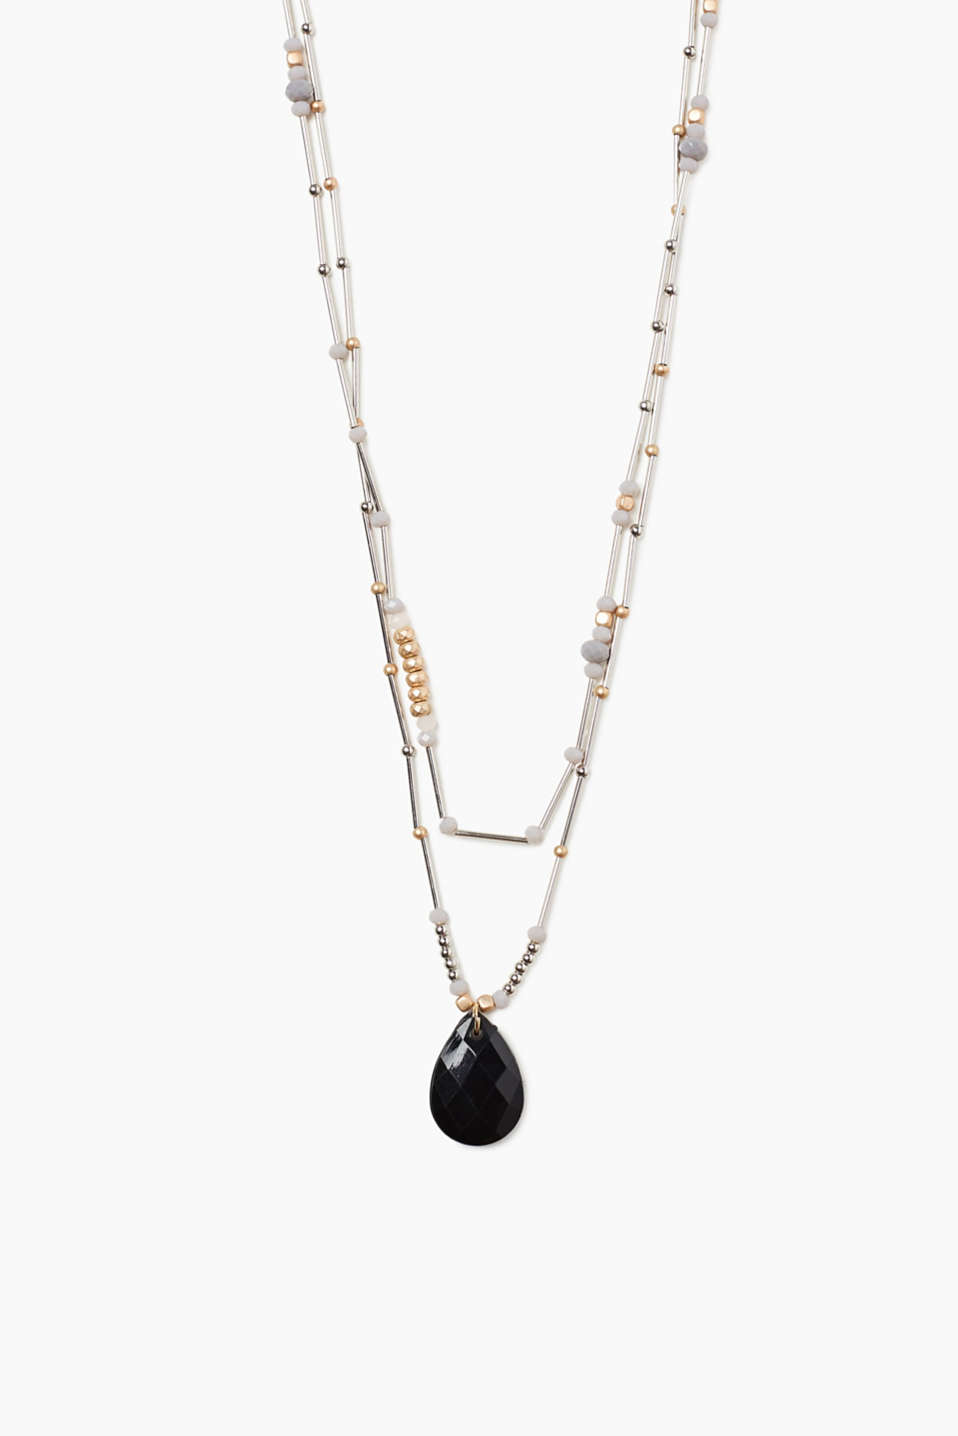 A real eye-catcher - you cannot miss this necklace thanks to its beads in various shapes and sizes